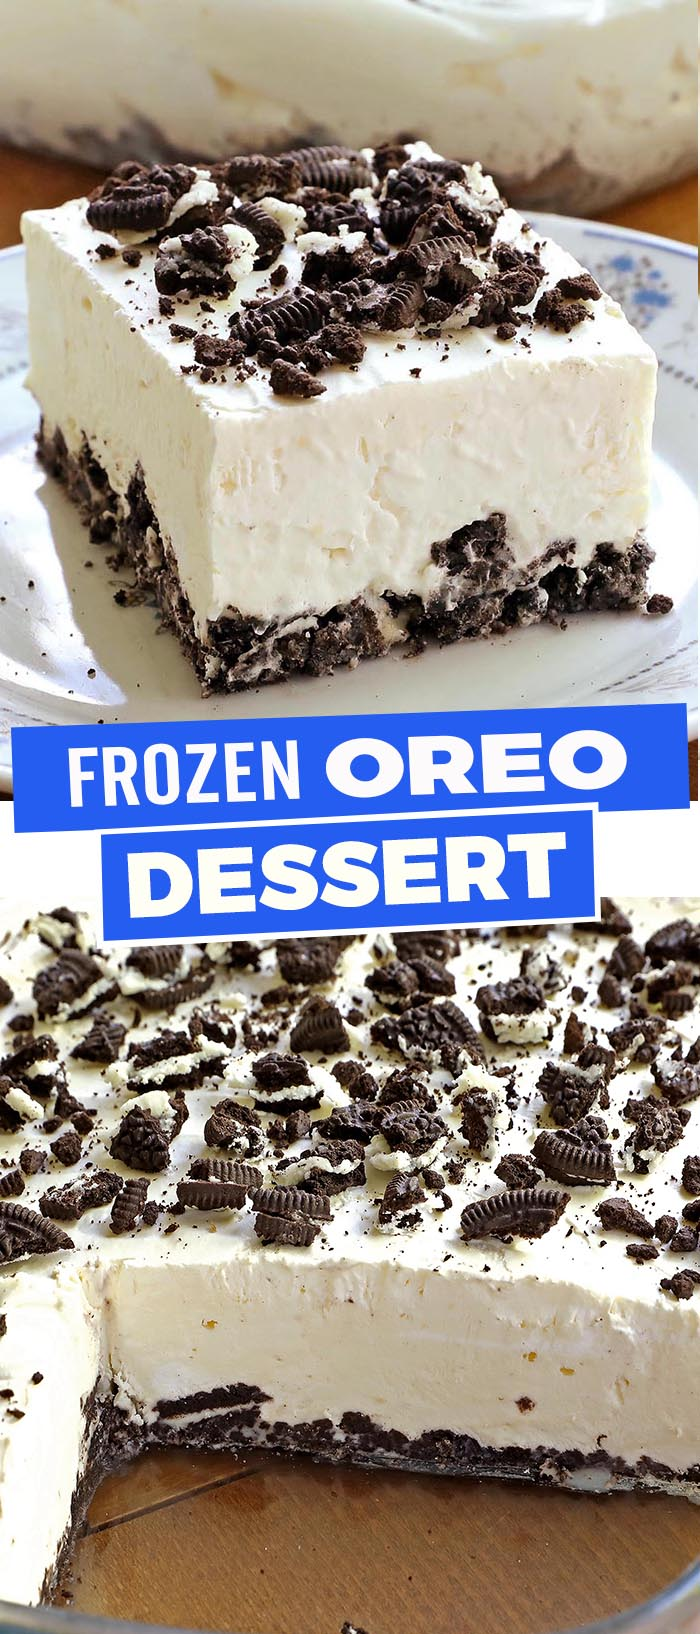 Light, Cool and Creamy Frozen Oreo Dessert is the ultimate oreo treat for any Oreo fan!